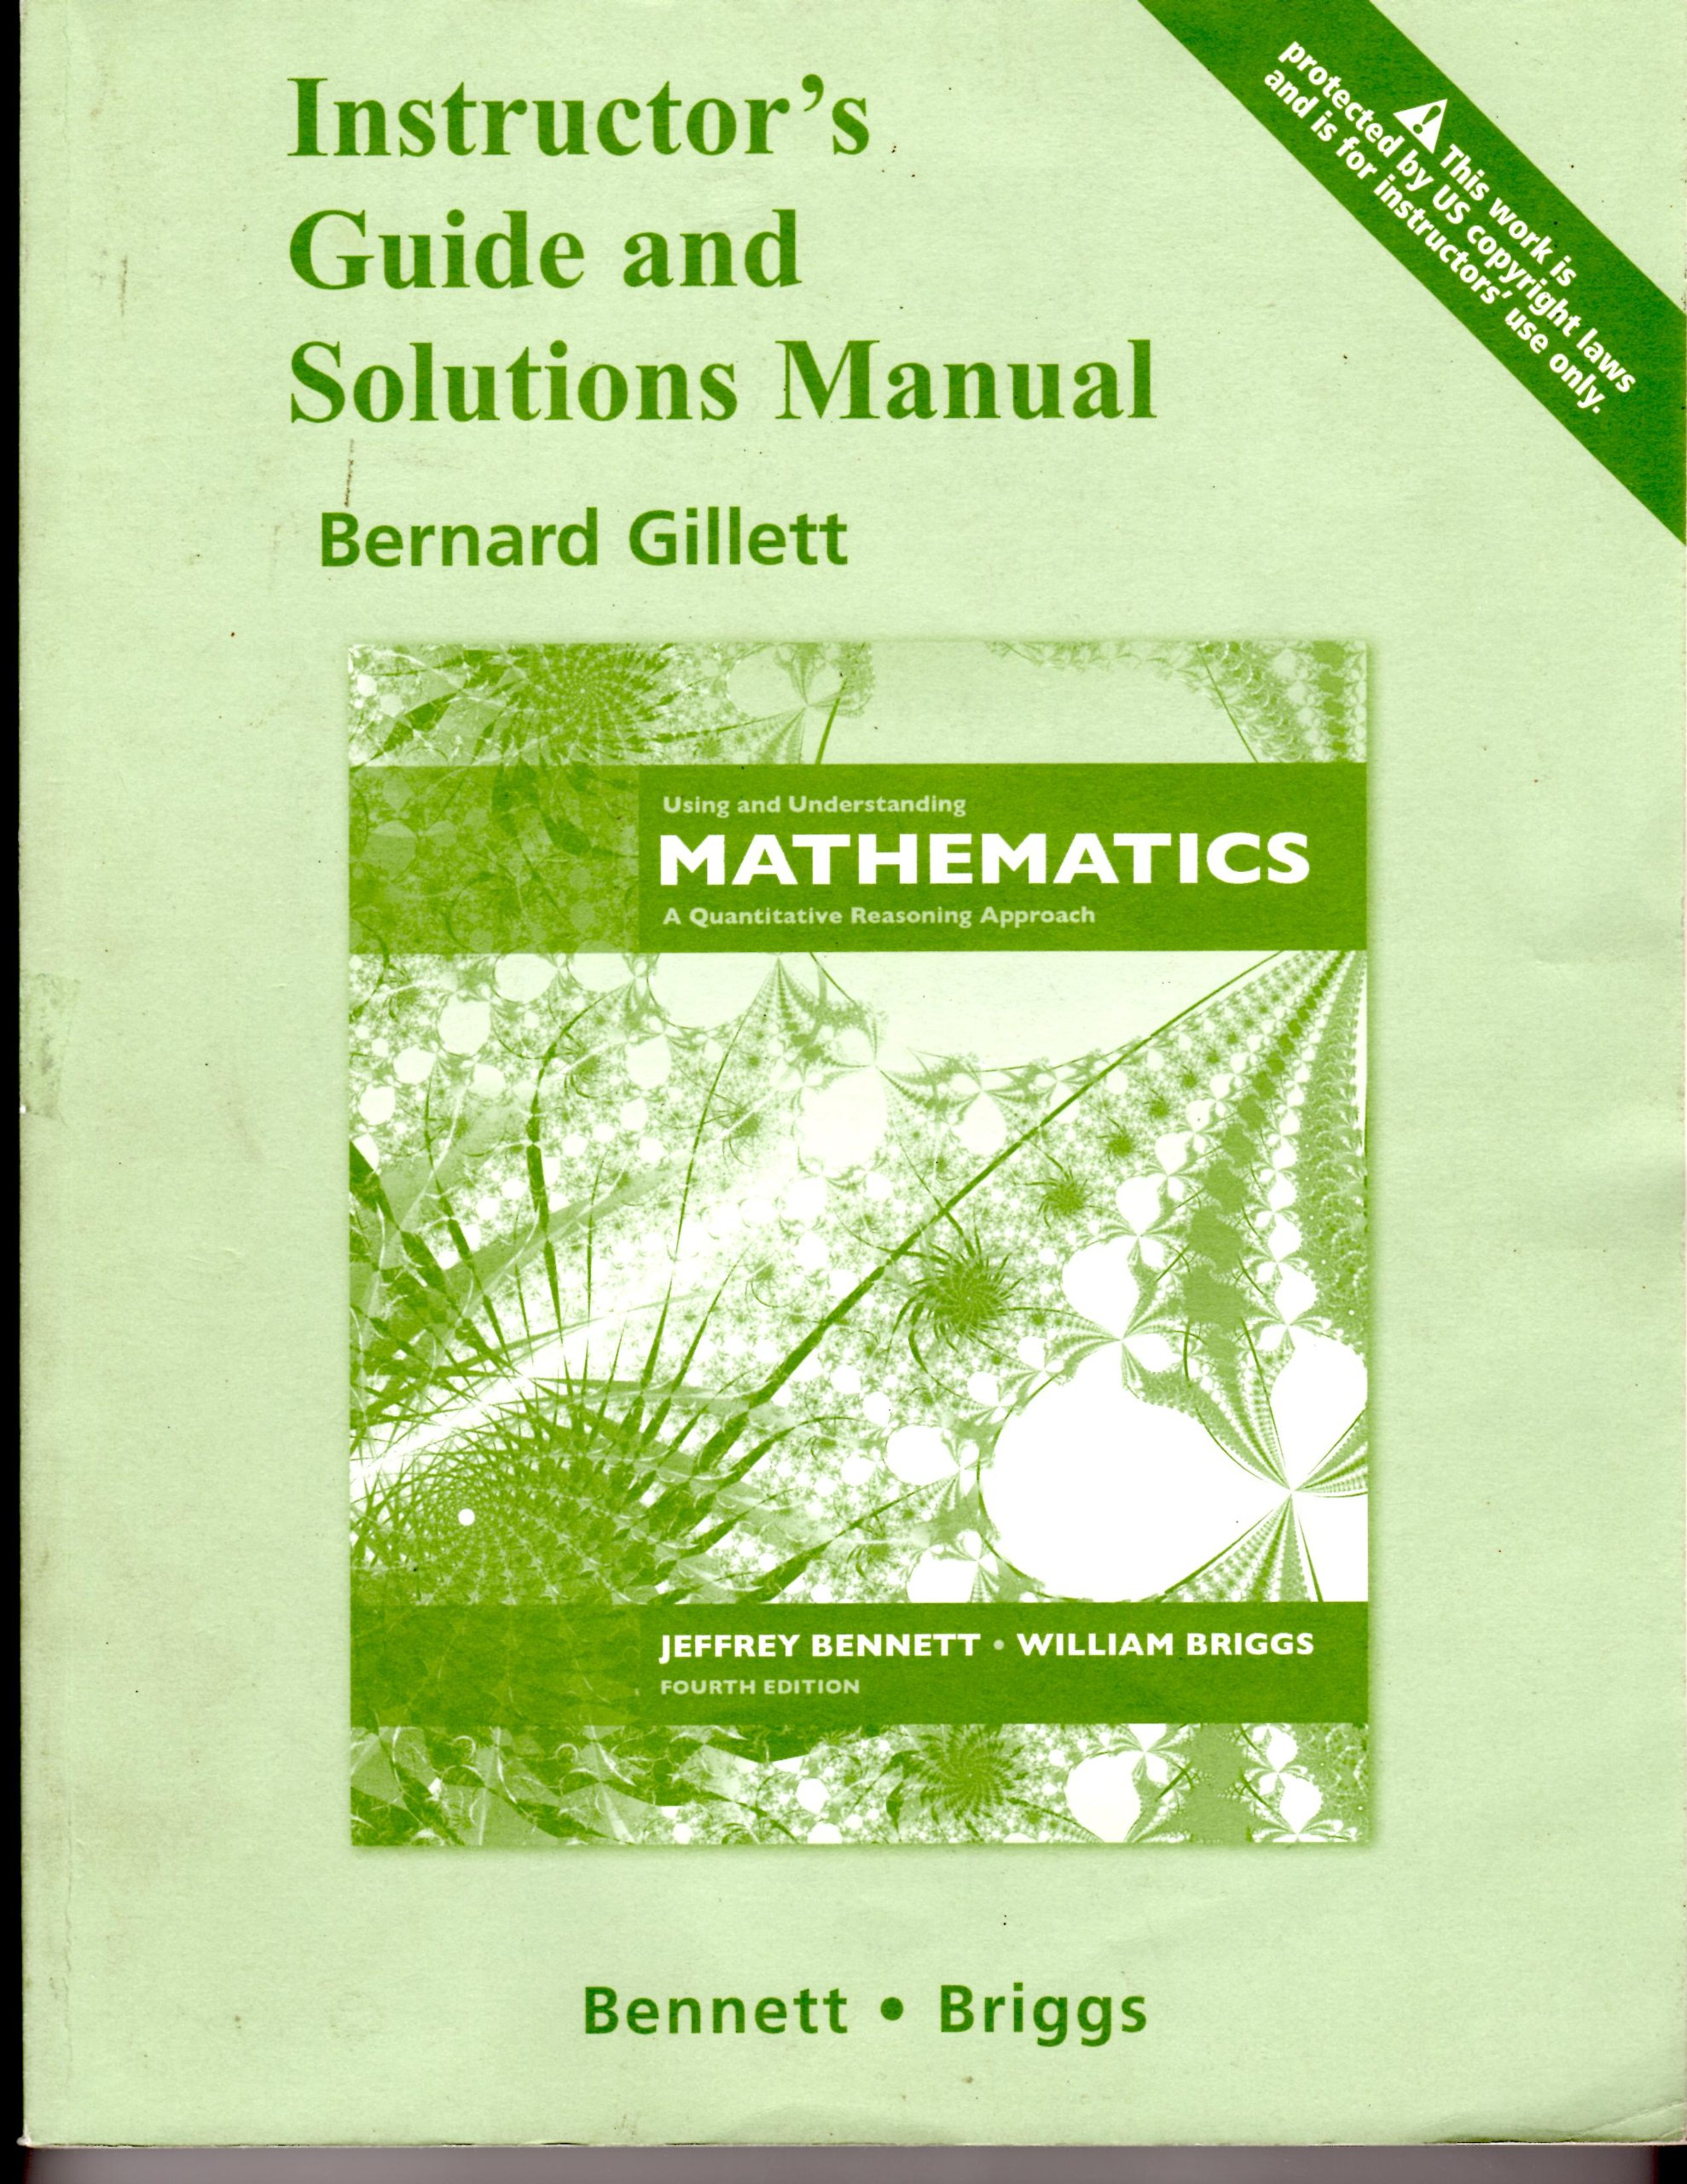 Download Instructor's Guide fot ISBN 0321458206 Using Understanding Mathematics 4th Edition with Solutions Ma PDF Text fb2 book